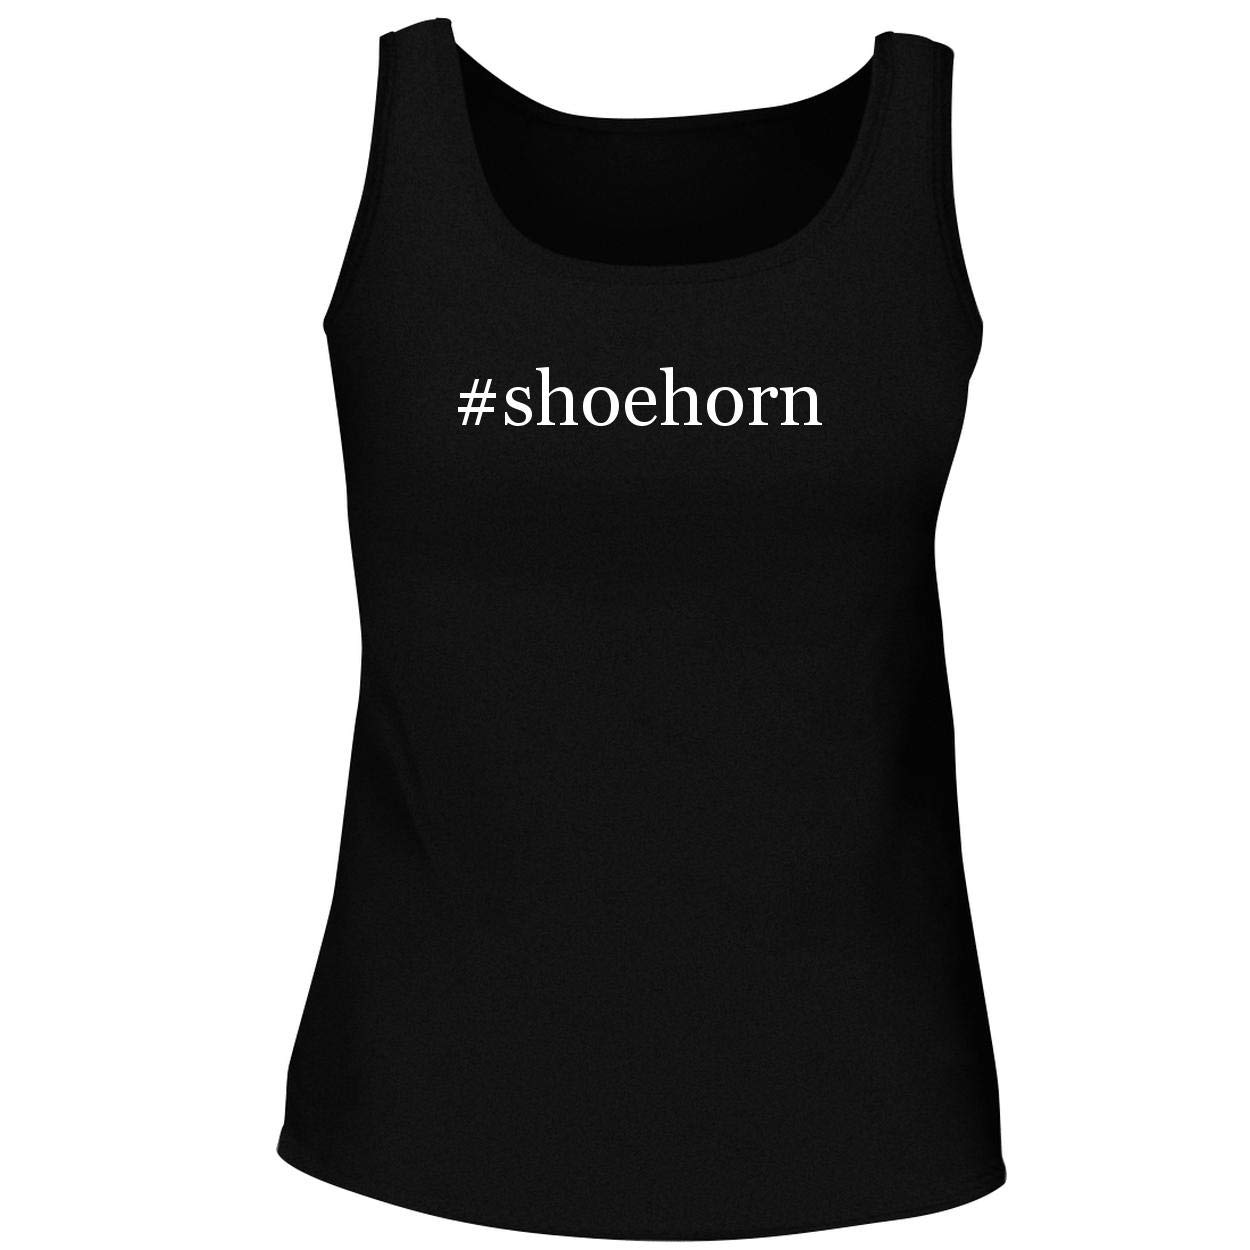 BH Cool Designs #Shoehorn - Cute Women's Graphic Tank Top, Black, Large